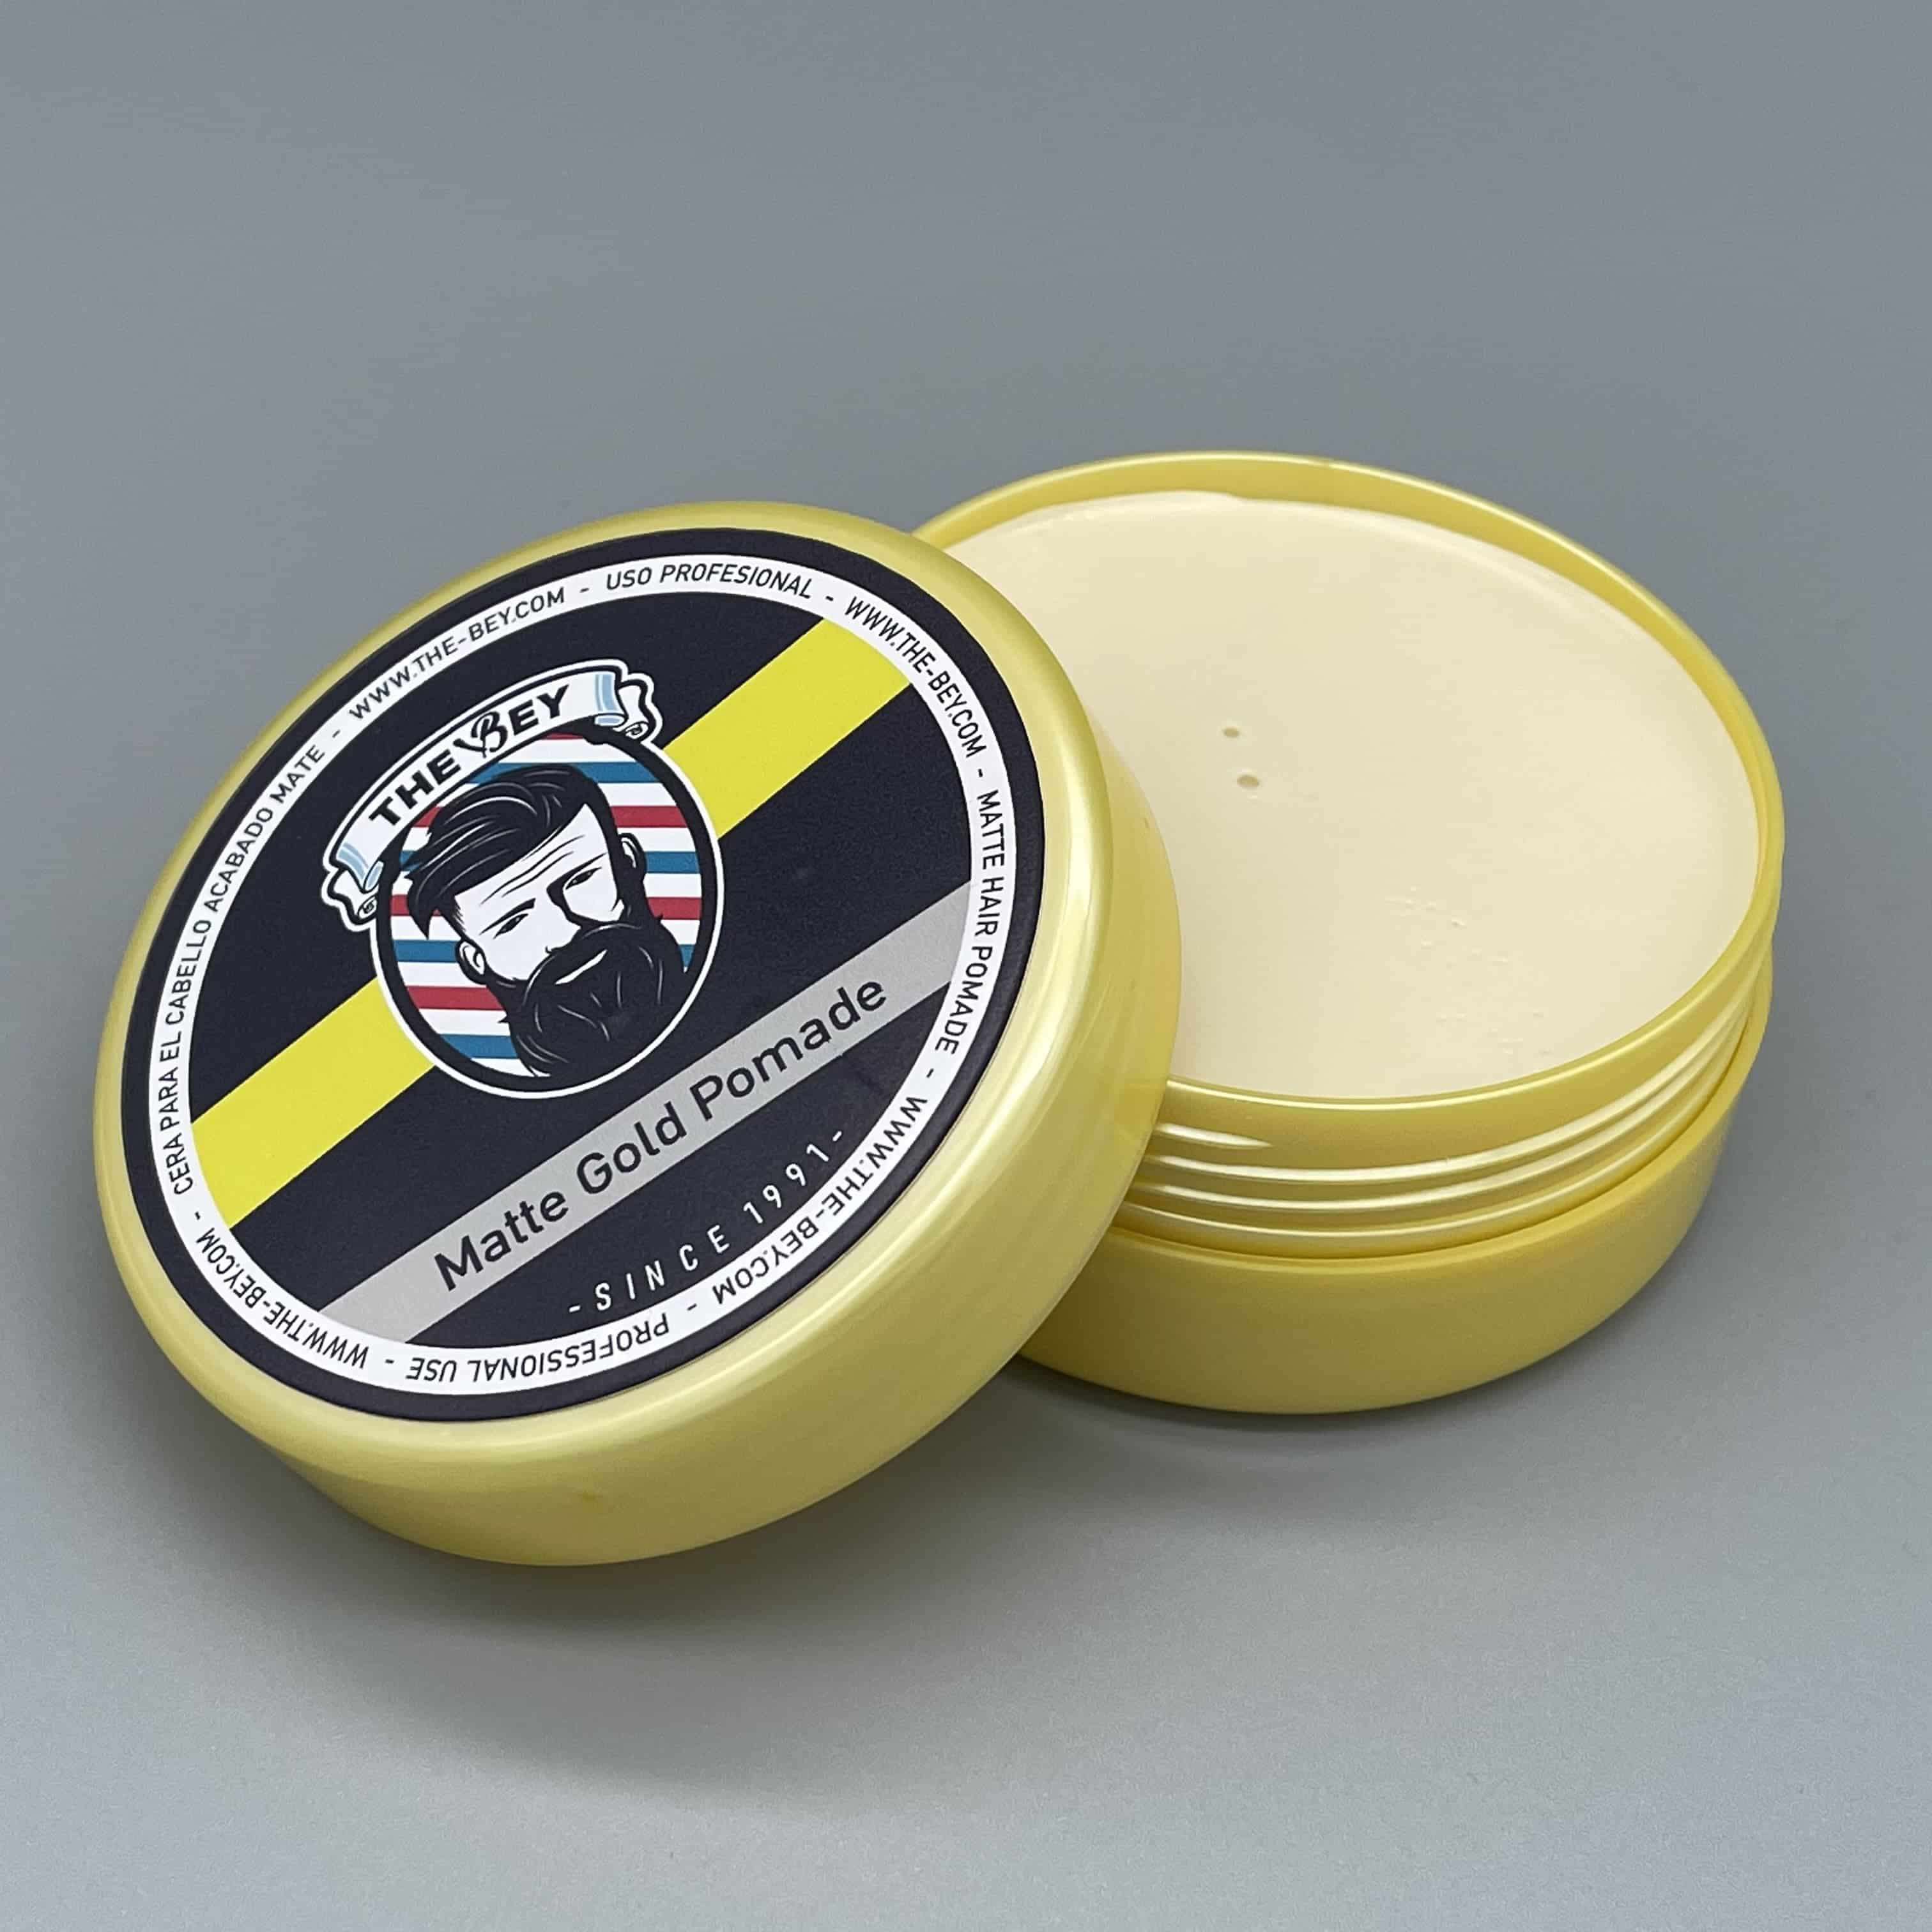 Matte Gold Pomade Cire